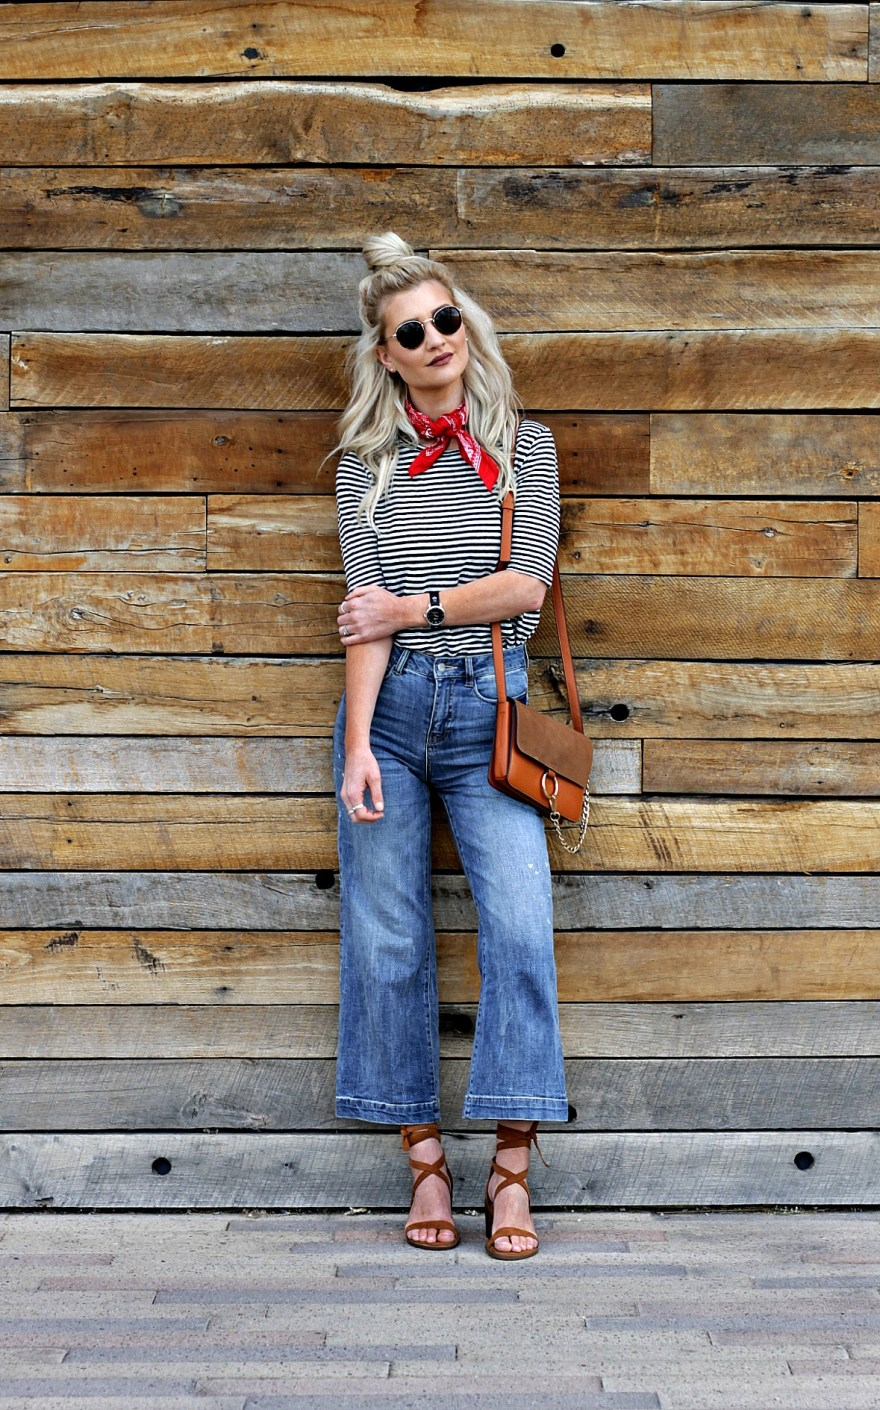 outfit roundup, 2017, 2018 style, fashion blogger, style blogger, beauty blogger, blonde hair, Las Vegas blogger, Lindsey Simon, The Nomis Niche, street style, casual style, feminine style, edgy outfit, outfit inspiration, how to wear, outfit ideas,  fall style, spring style, cropped jeans, kick flare jeans, bandana, striped tee, spring outfit inspiration, spring outfit ideas, topknot,